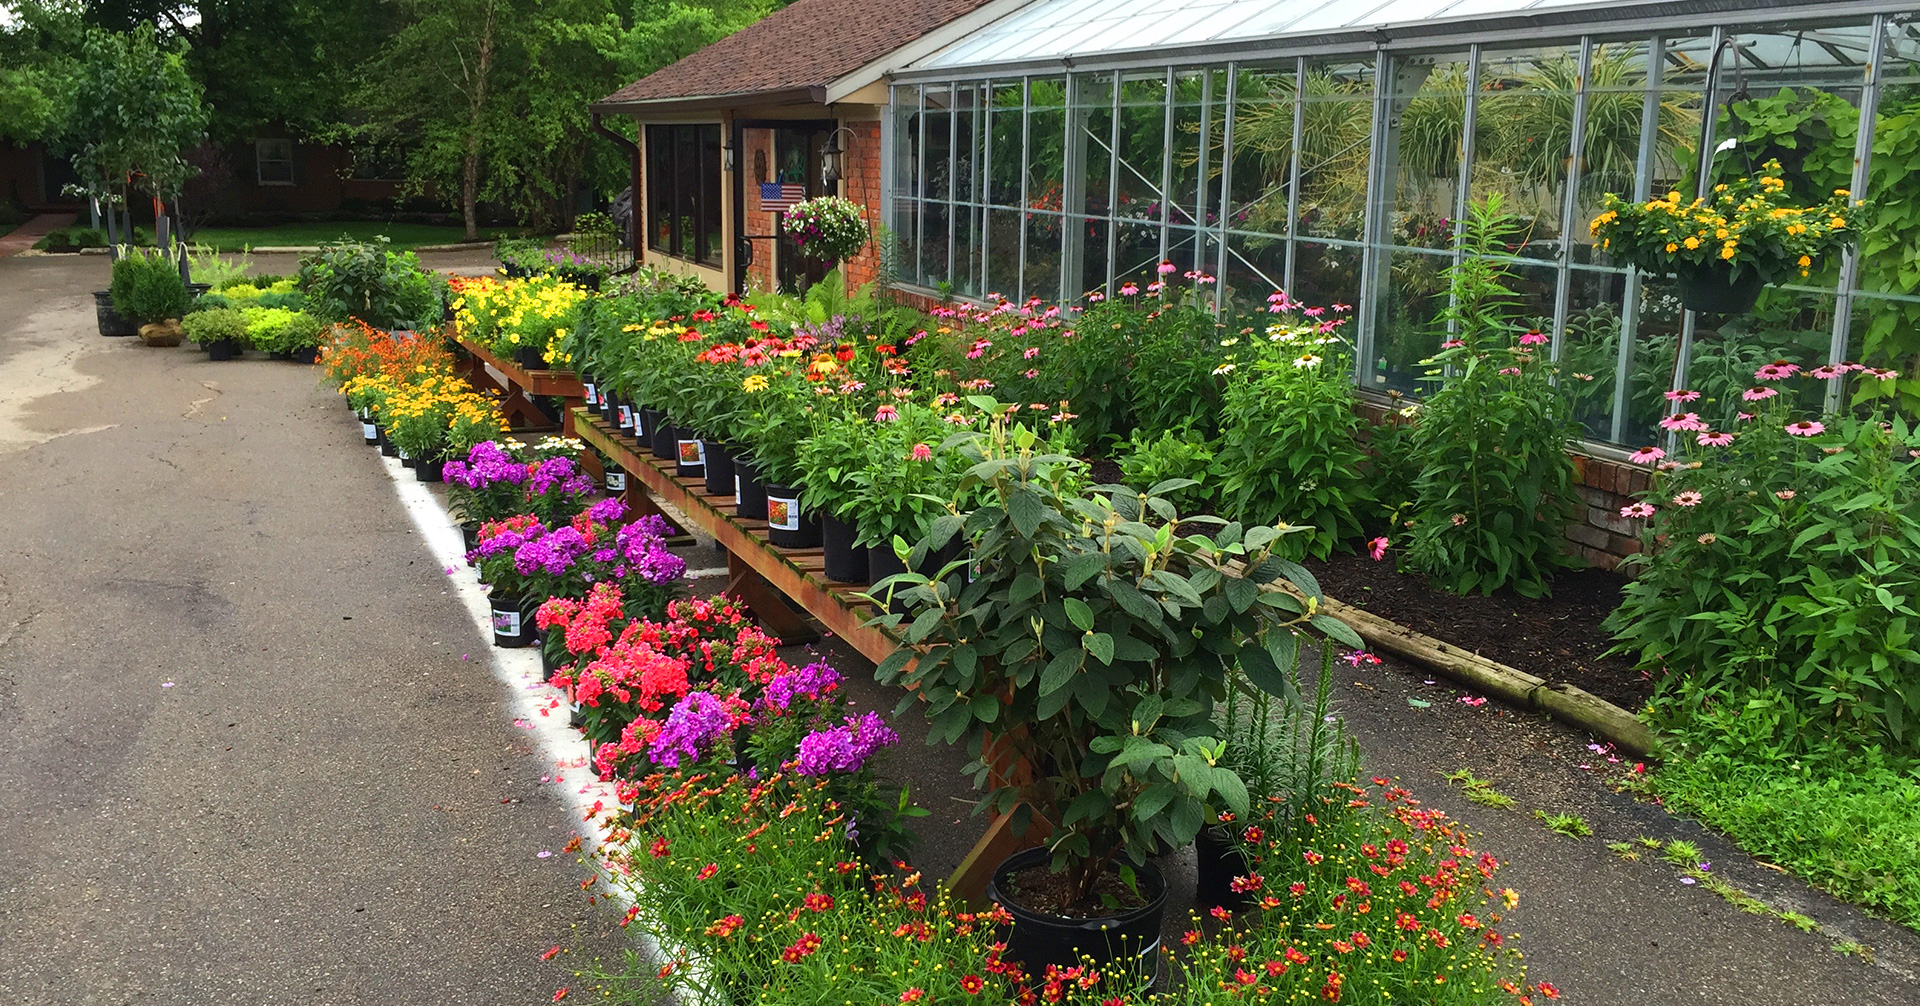 Landscaped Gardens Facility: Joe Cappel's Garden Center & Landscaping Services > Cincinnati, OH